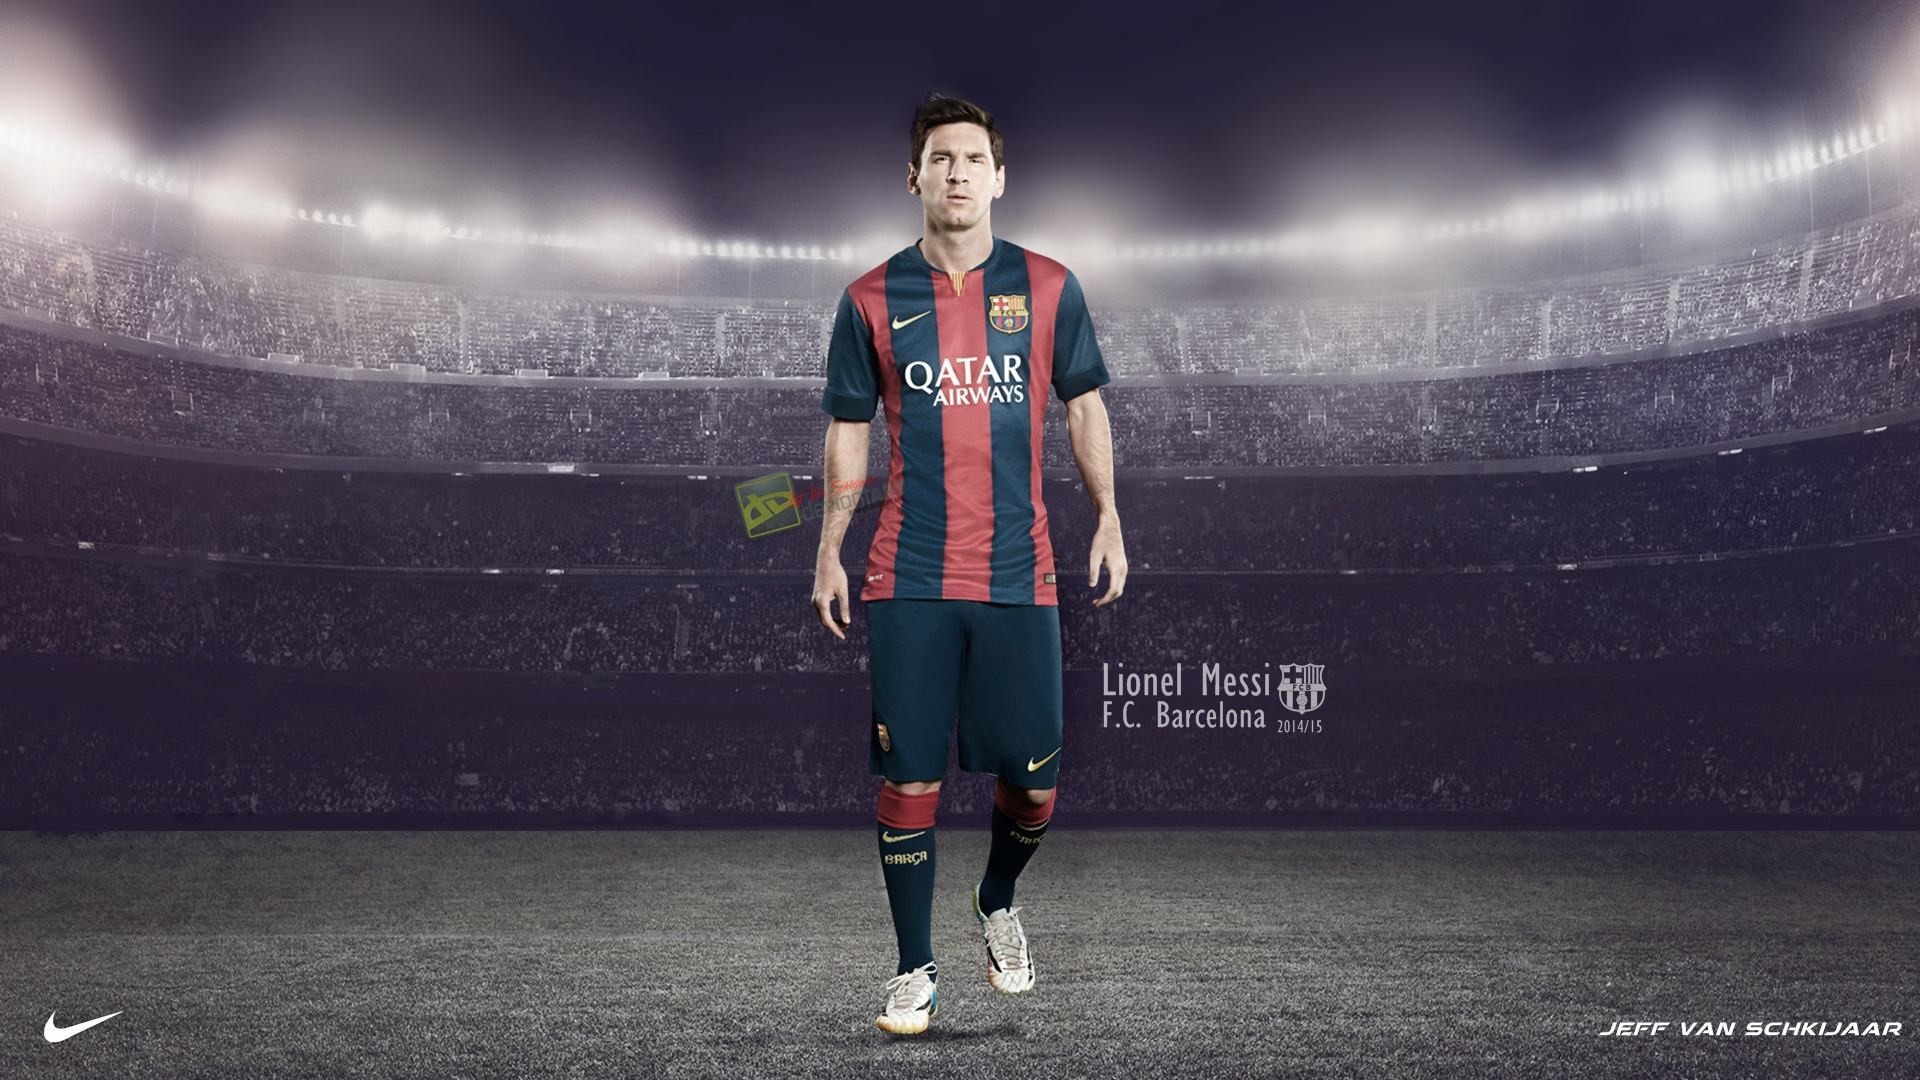 Lionel Messi Wallpapers for Mobile Download